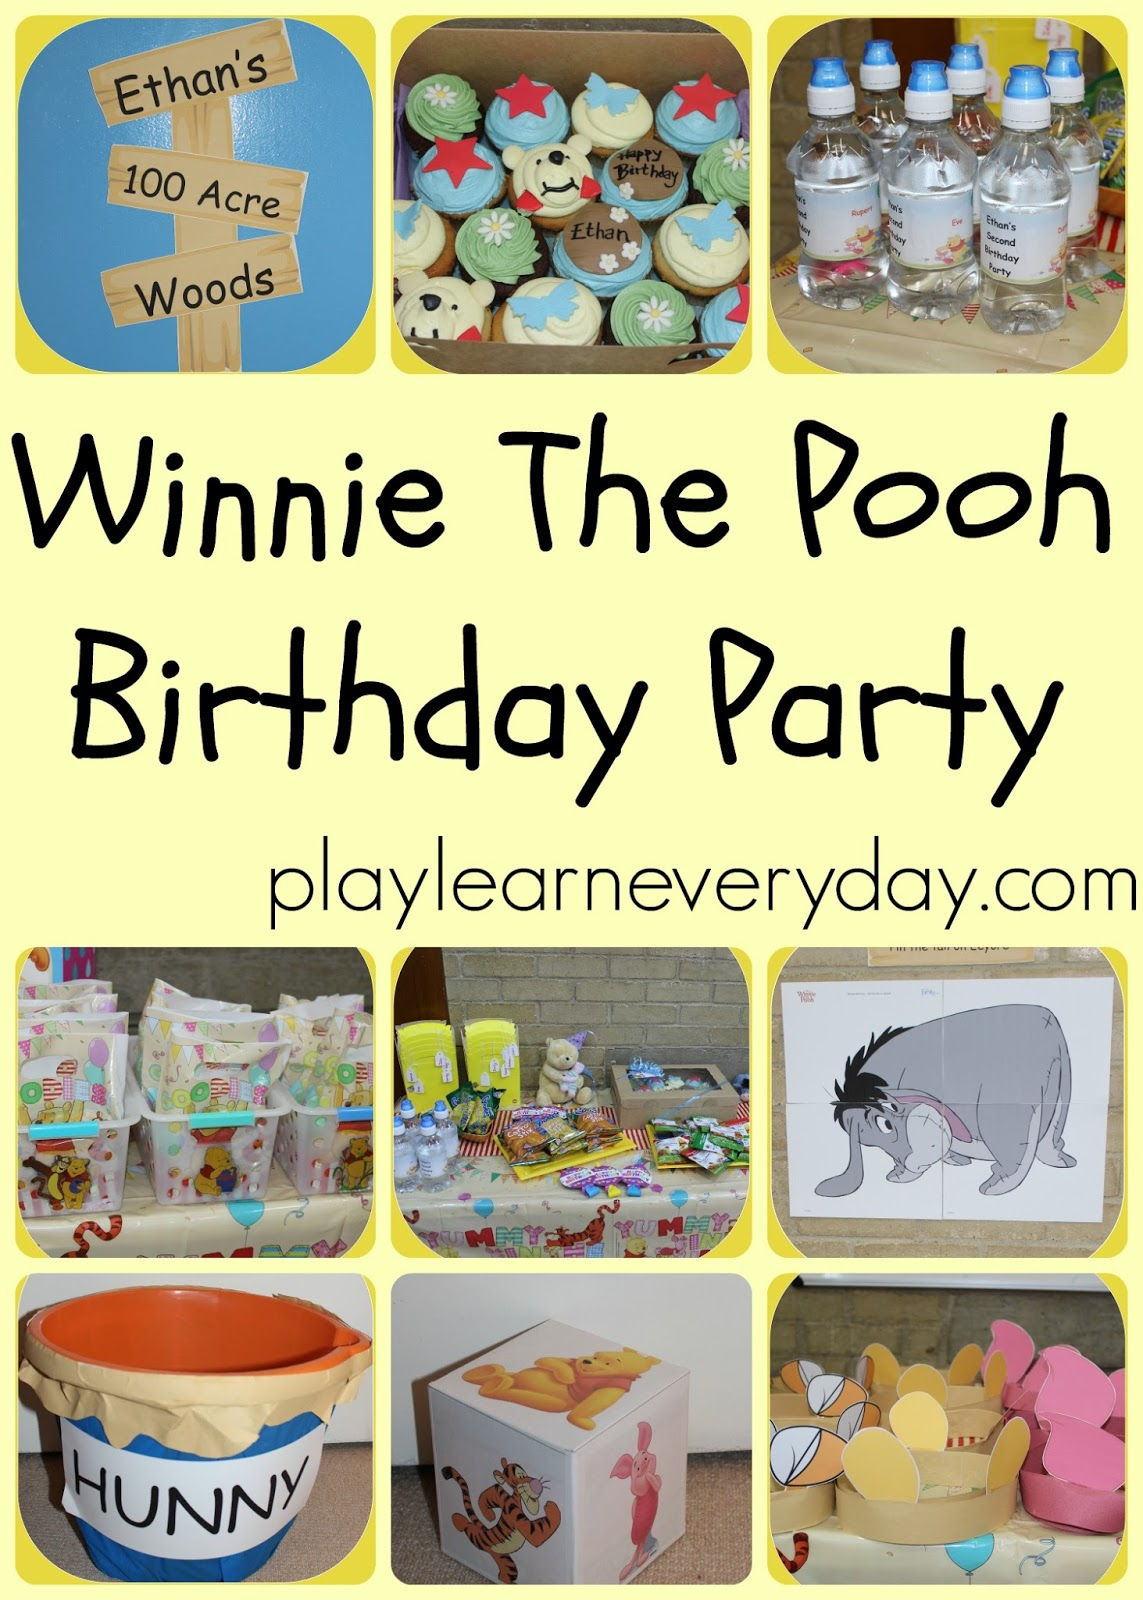 Ethans Winnie The Pooh Second Birthday Party